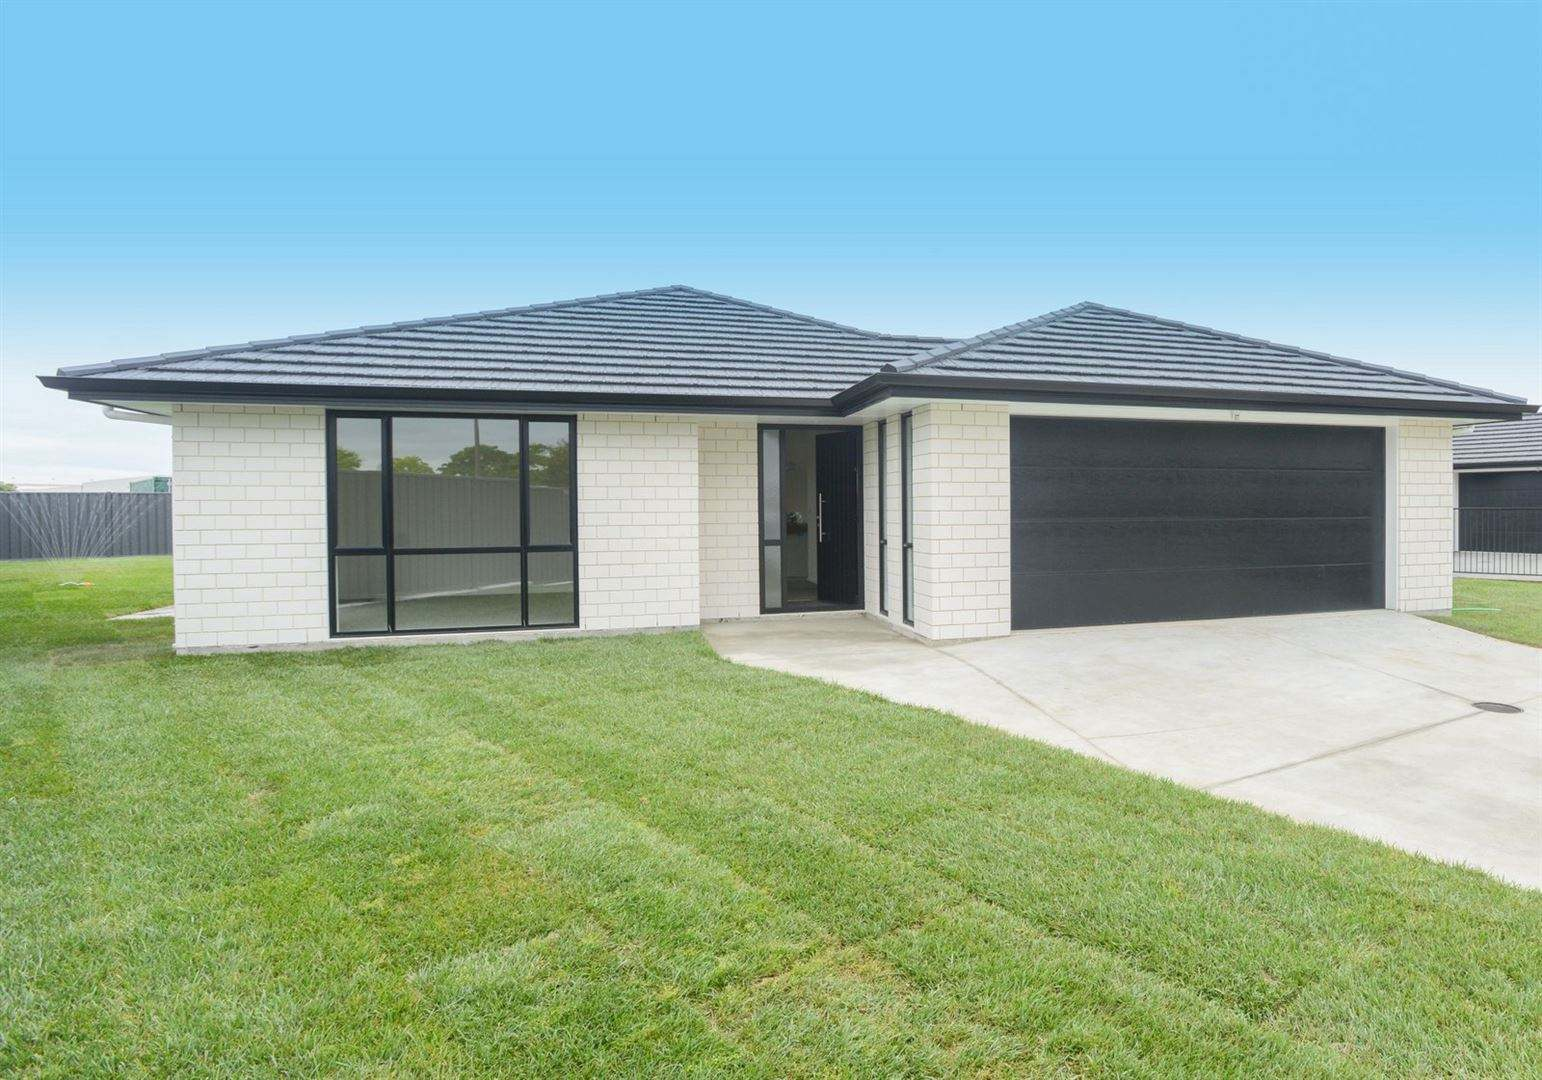 Waipukurau and Surrounds 3房 House and Land Packages!